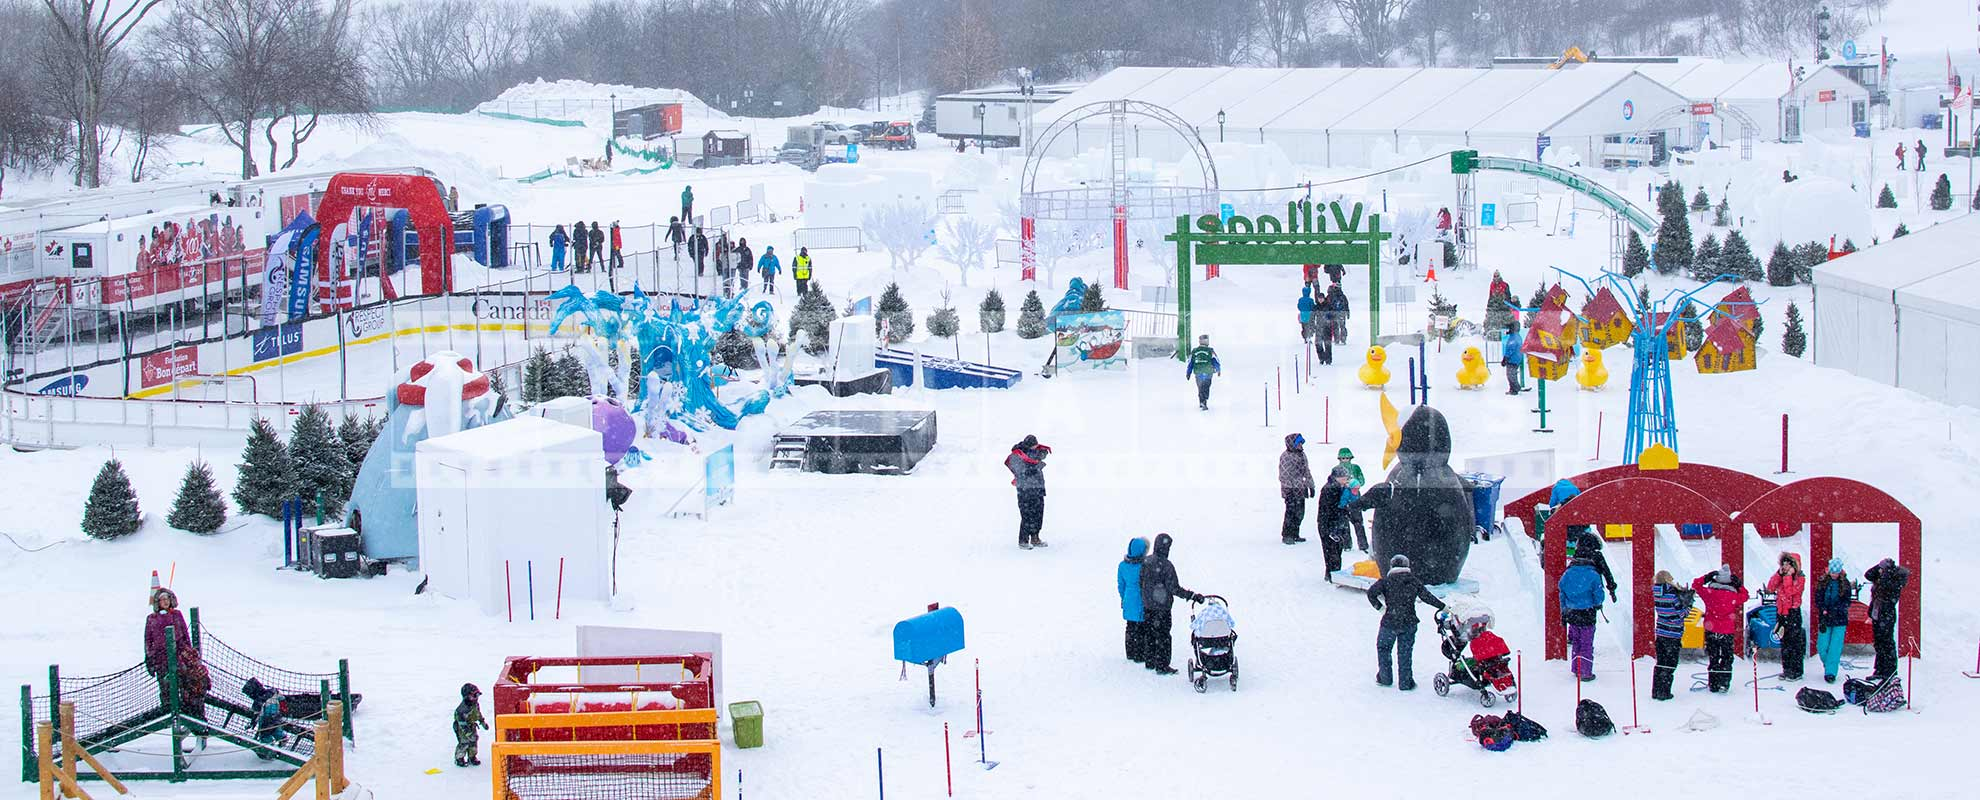 snow covered grounds of Quebec bonhomme winterland festival